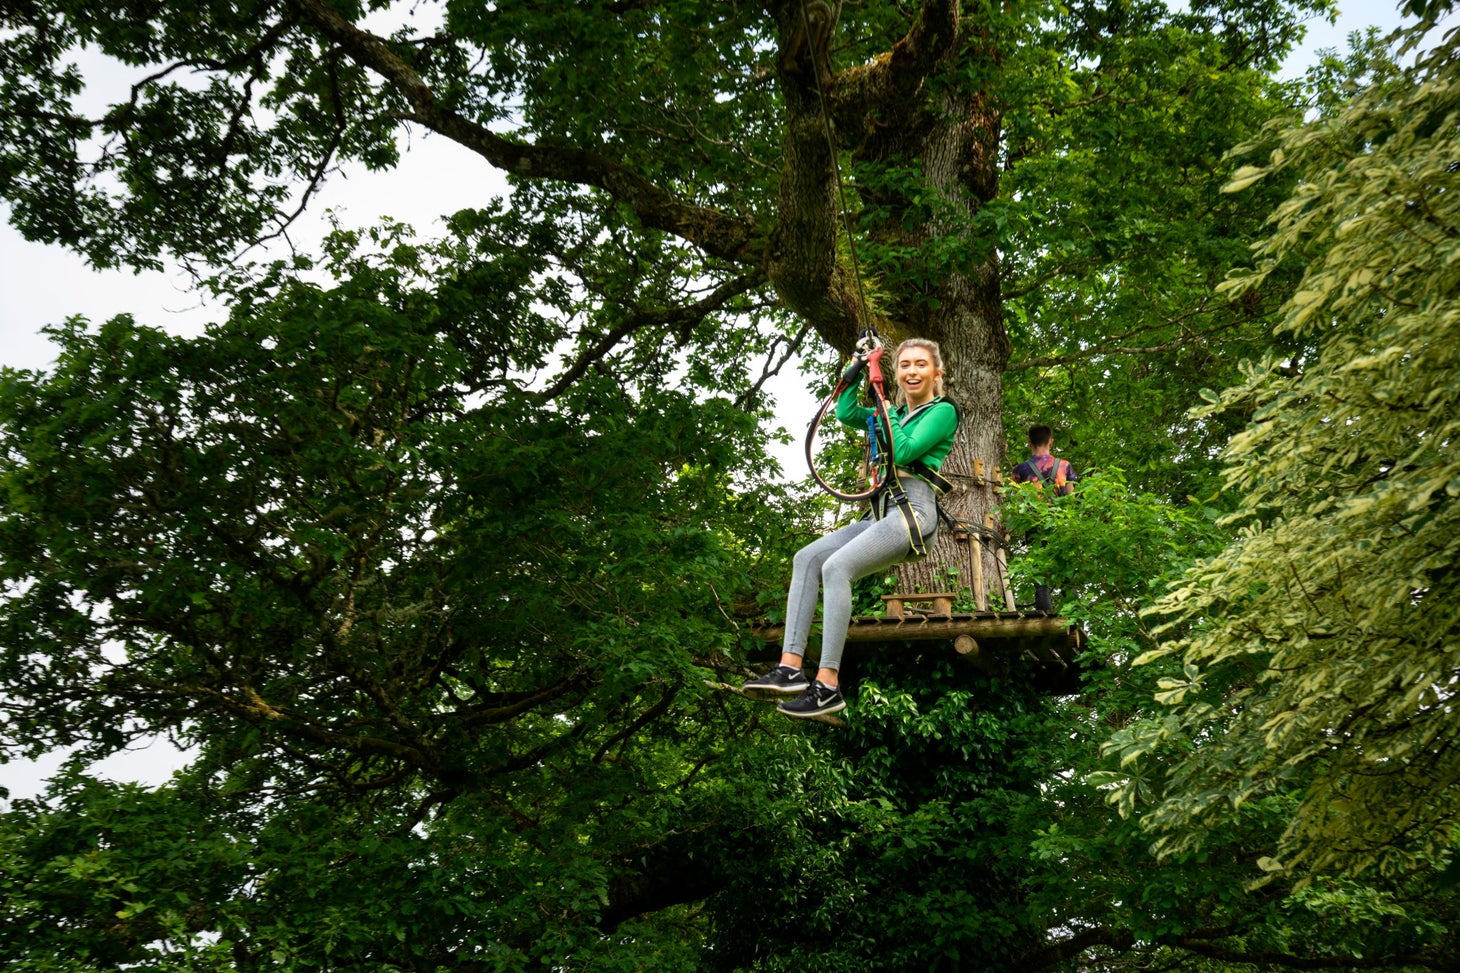 Ziplining at Lough Key Forest Park